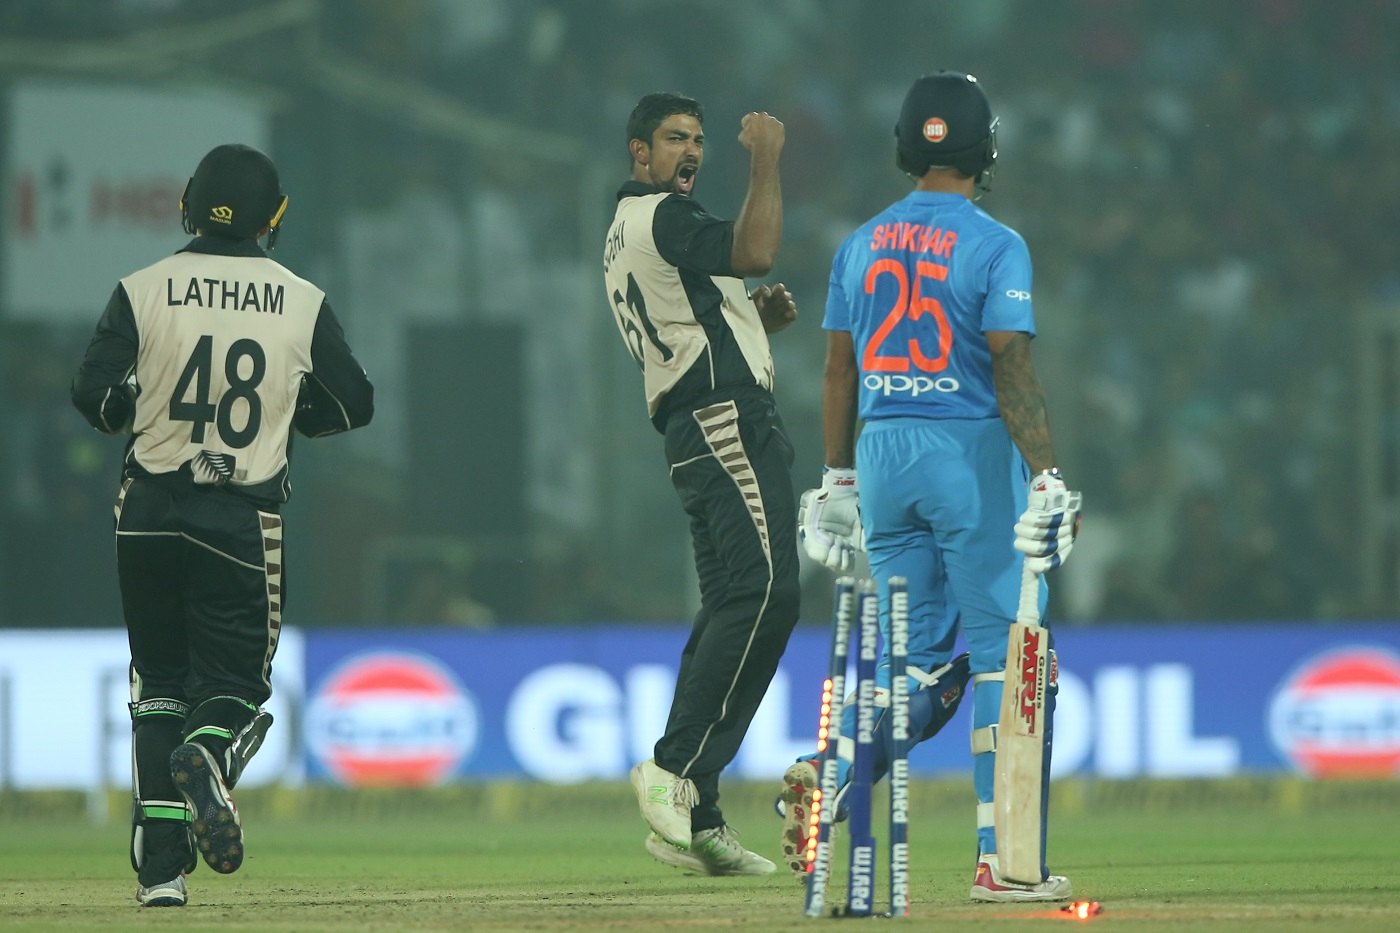 IND vs NZ 2017: We Will Treat The Series-Decider Like Any Other Game, Says Mitchell Santner 1